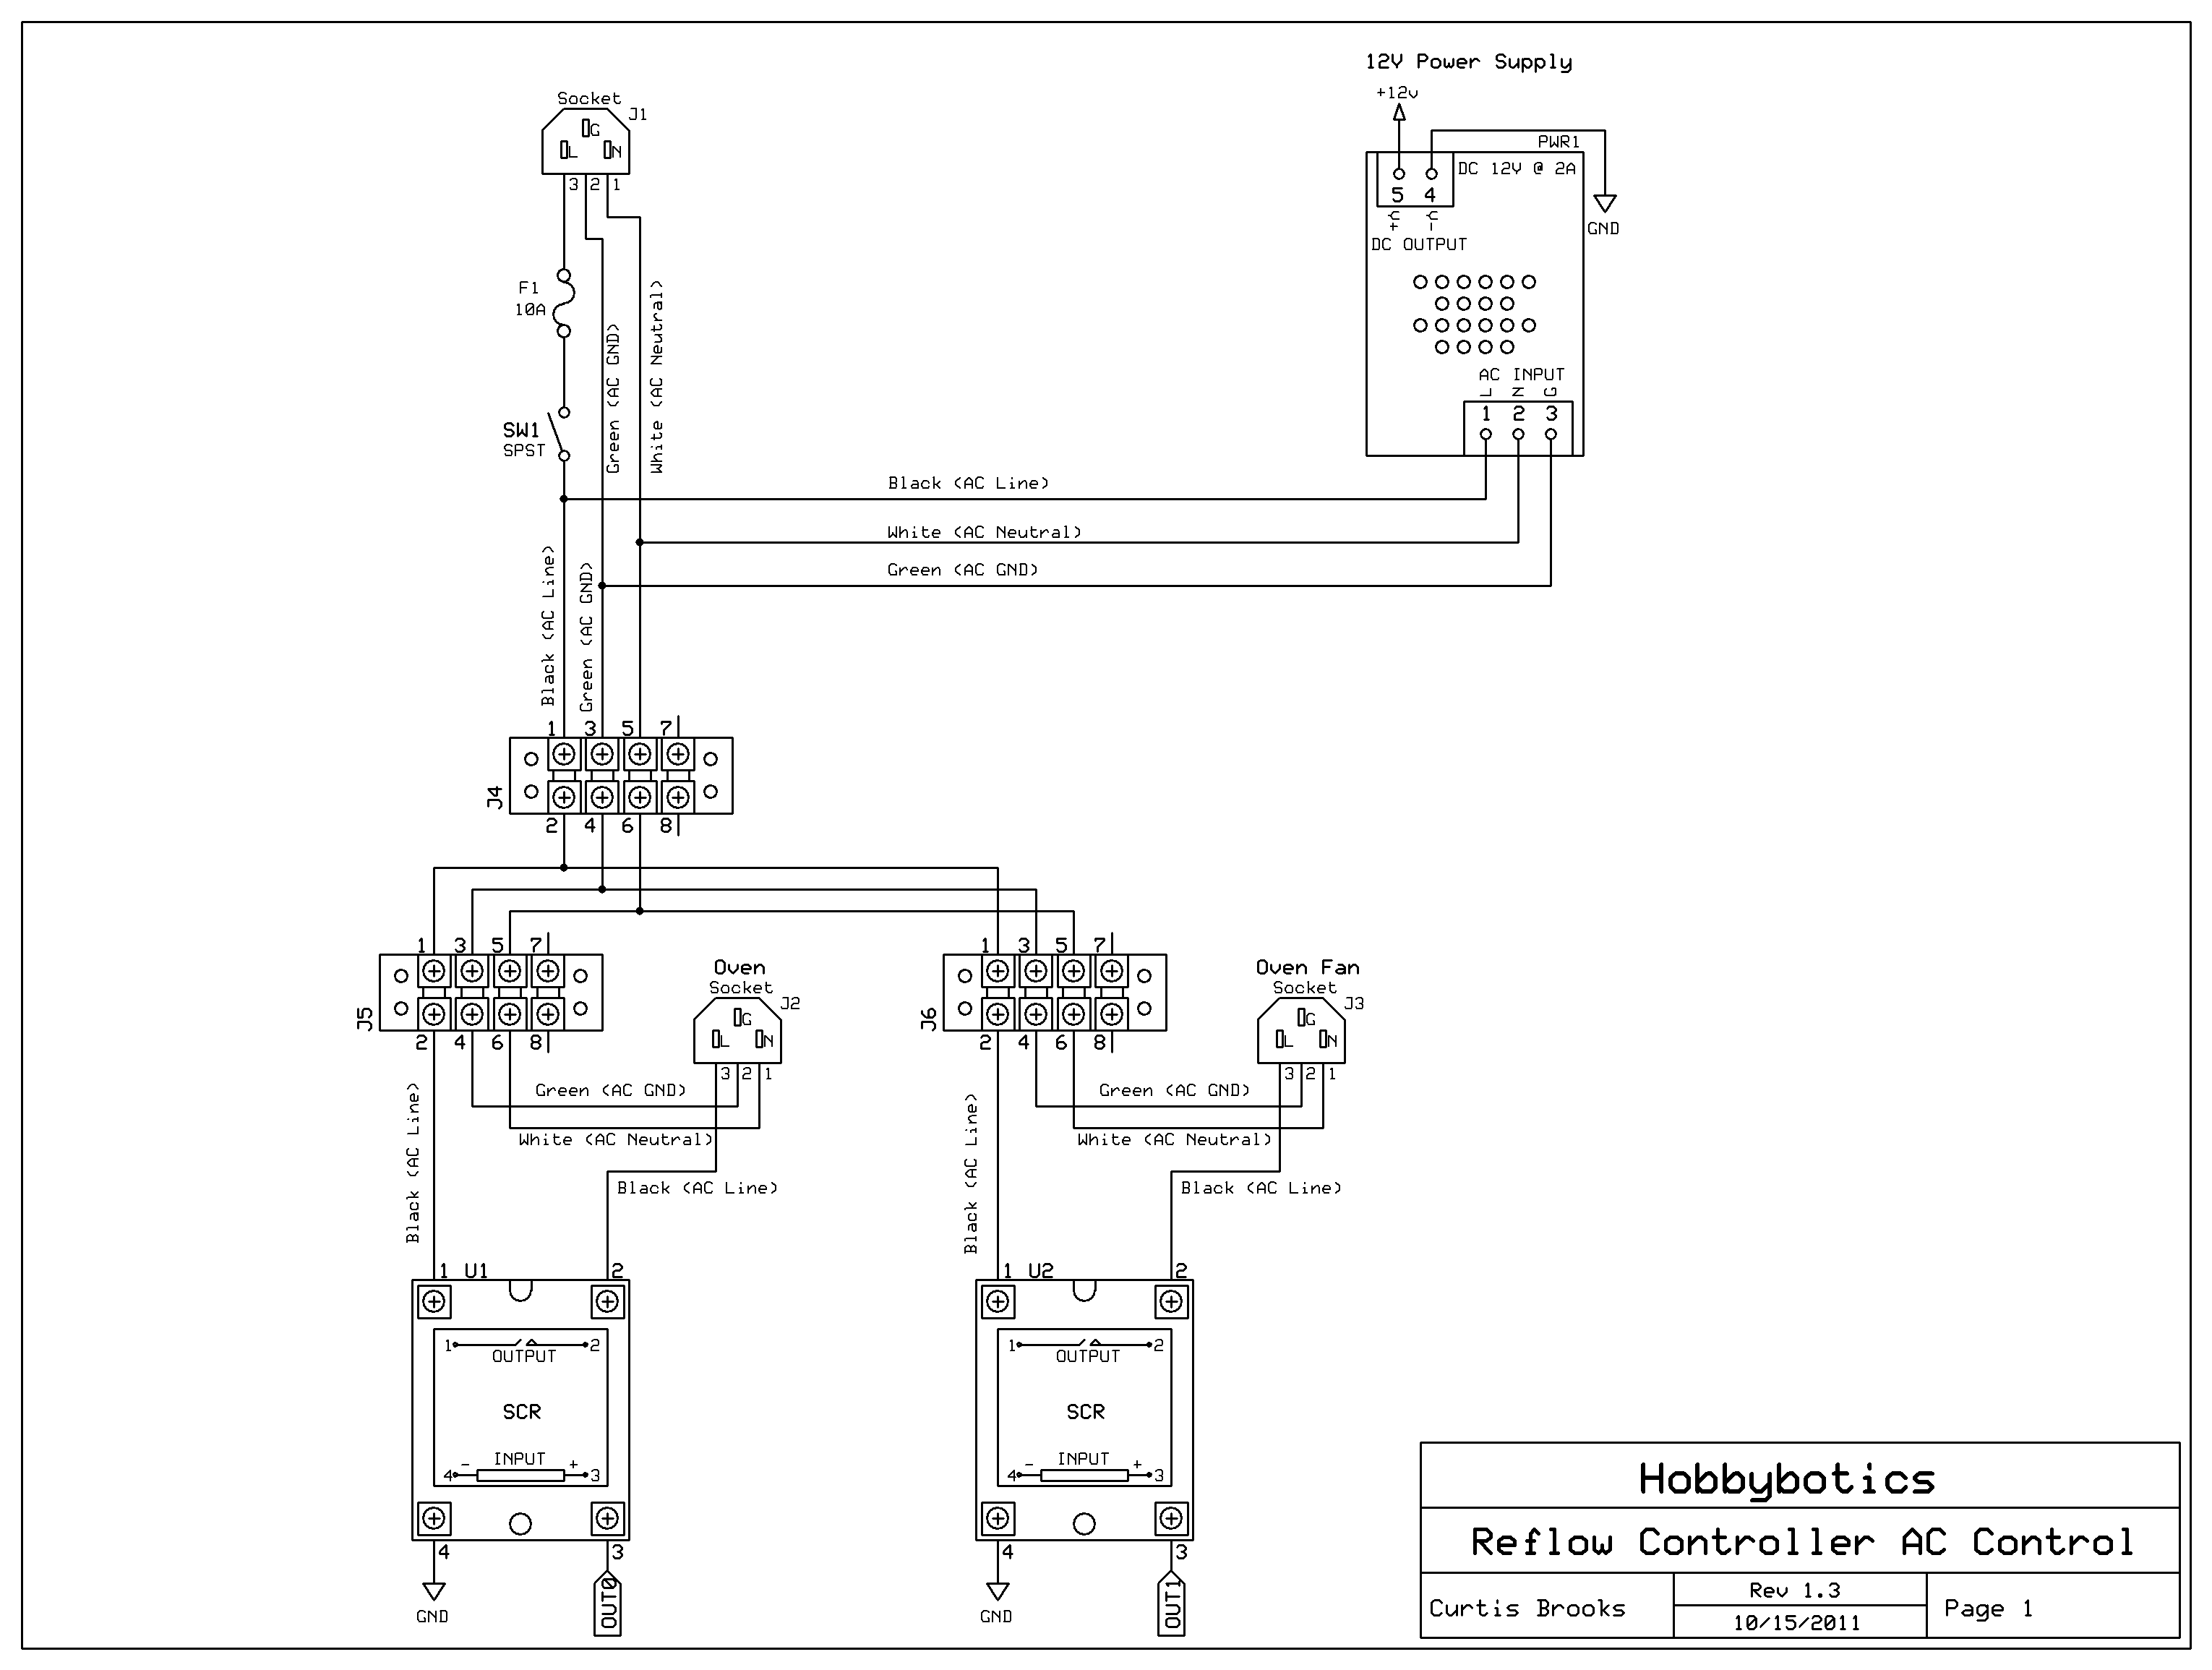 Home Wiring Diagrams Of 220 To 110 Conversion, Home, Get